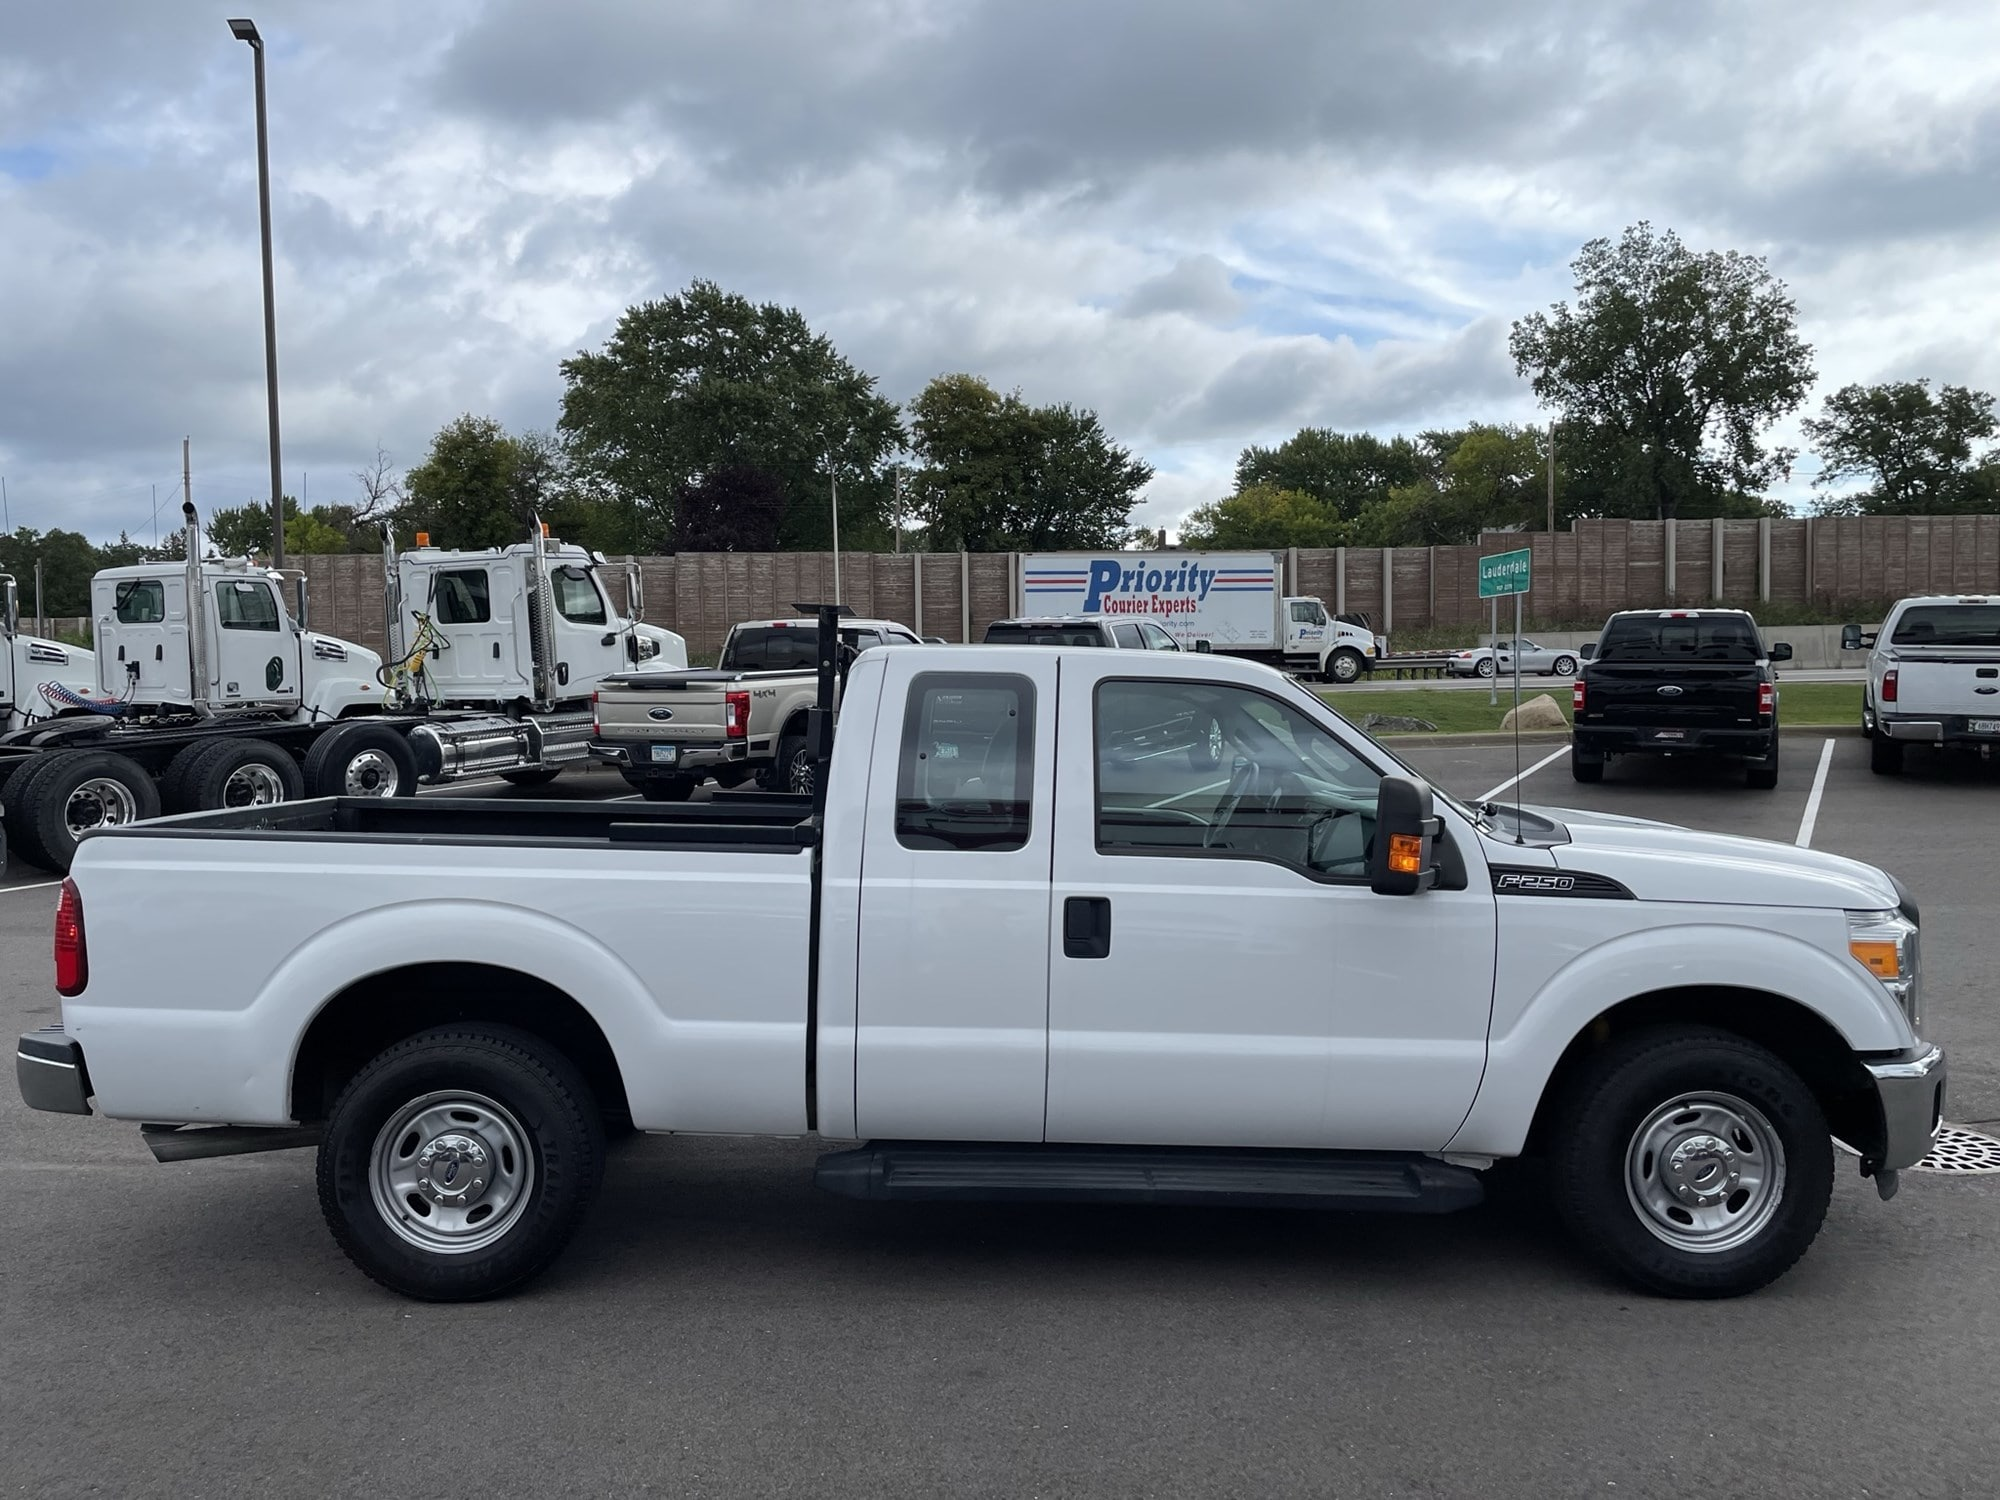 Used 2012 Ford F-250 Super Duty XL with VIN 1FT7X2A63CEB85192 for sale in Minneapolis, Minnesota